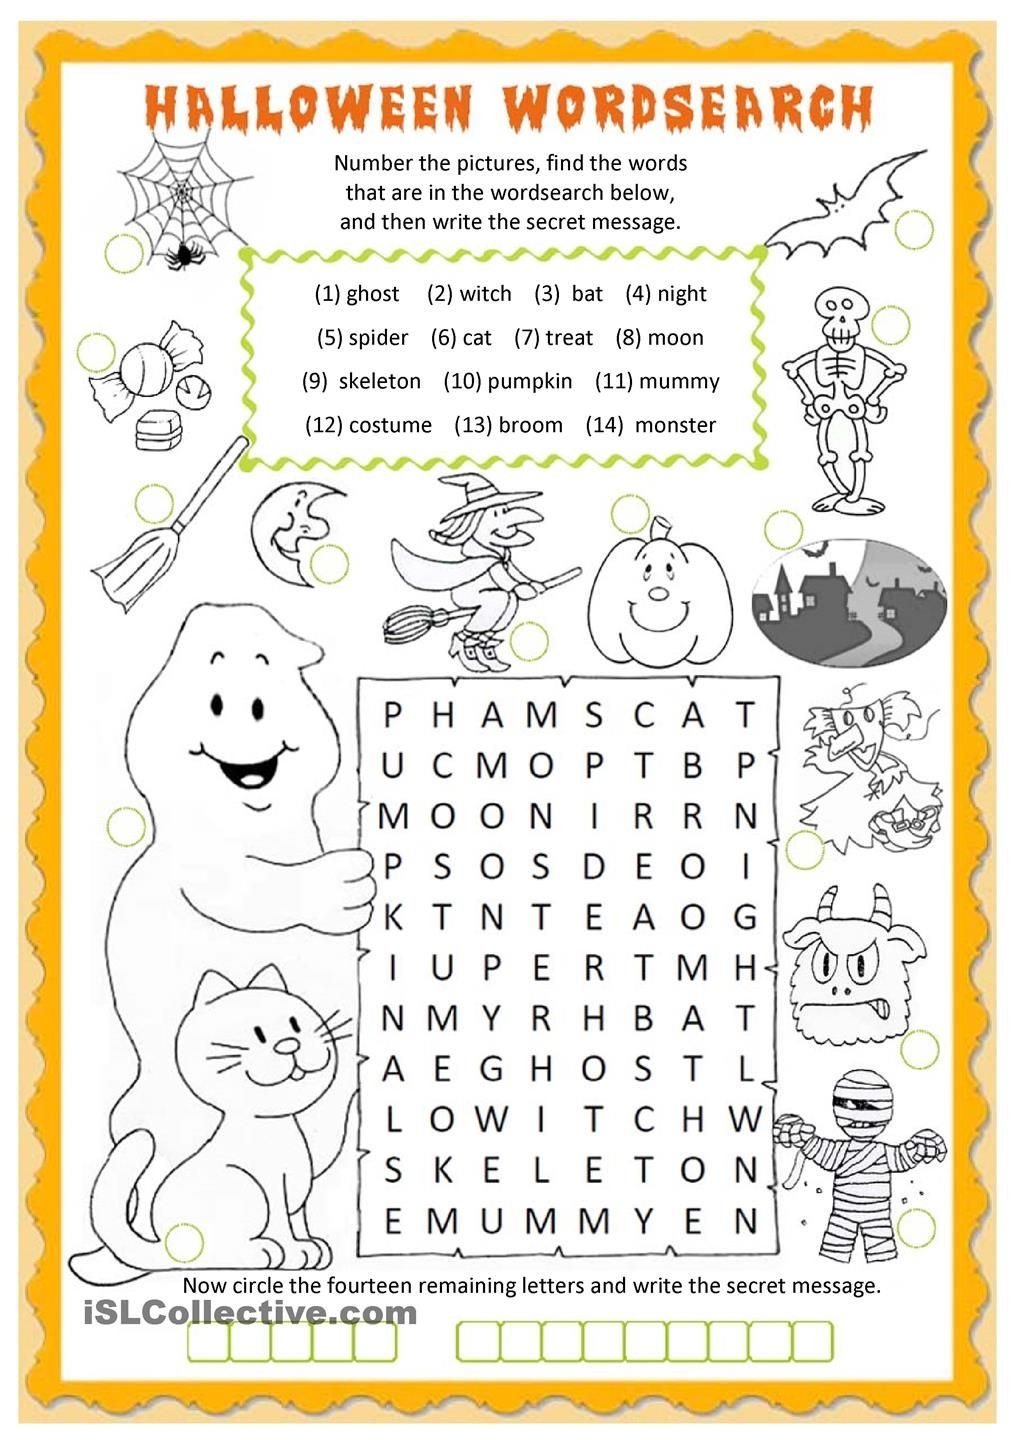 Halloween wordsearch worksheet Free ESL printable